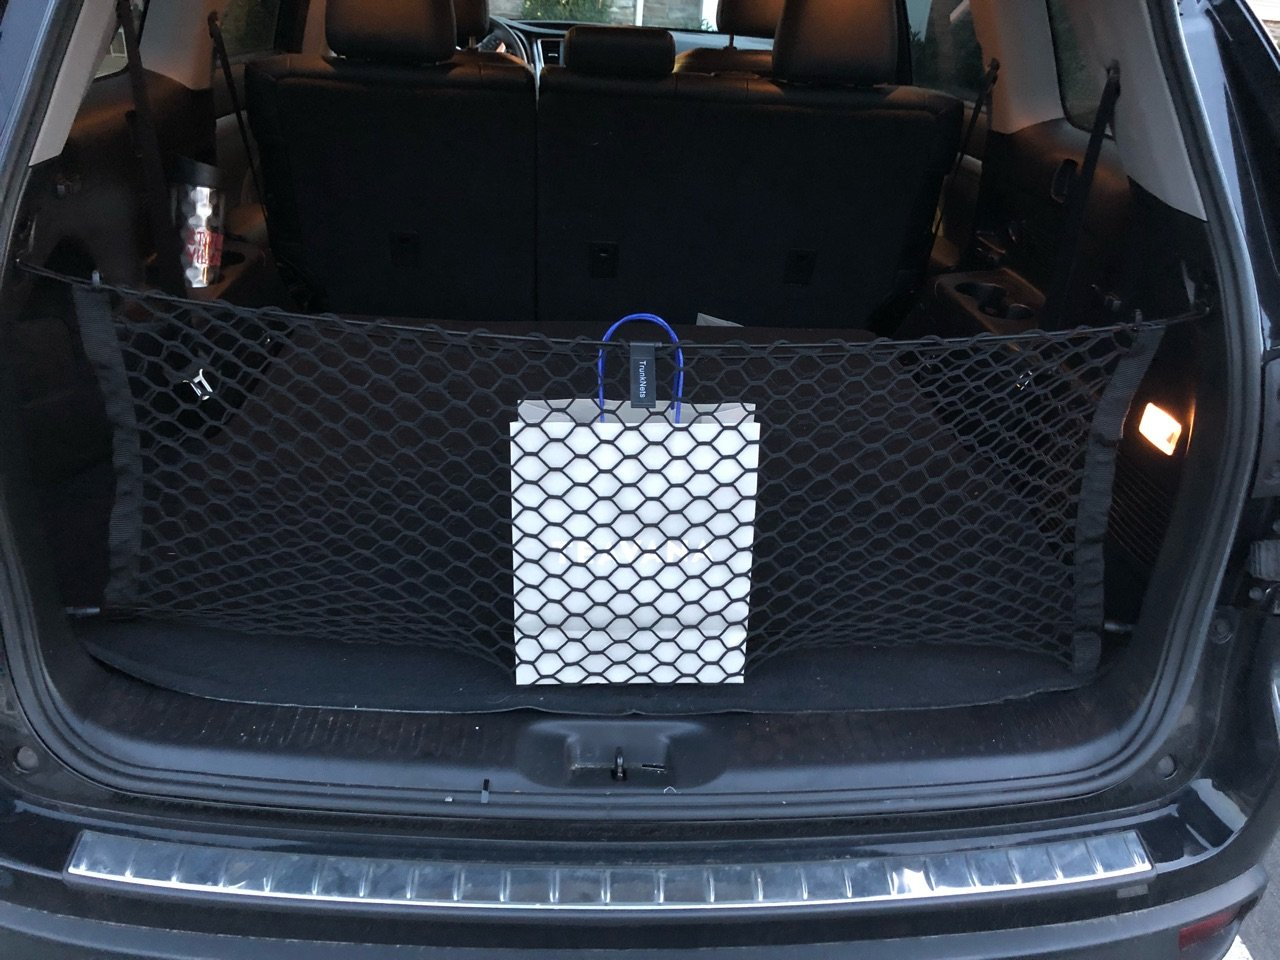 Envelope Style Trunk Cargo Net for Toyota Highlander Highlander Hybrid 2014 2015 2016 2017 2018 Trunknets Inc